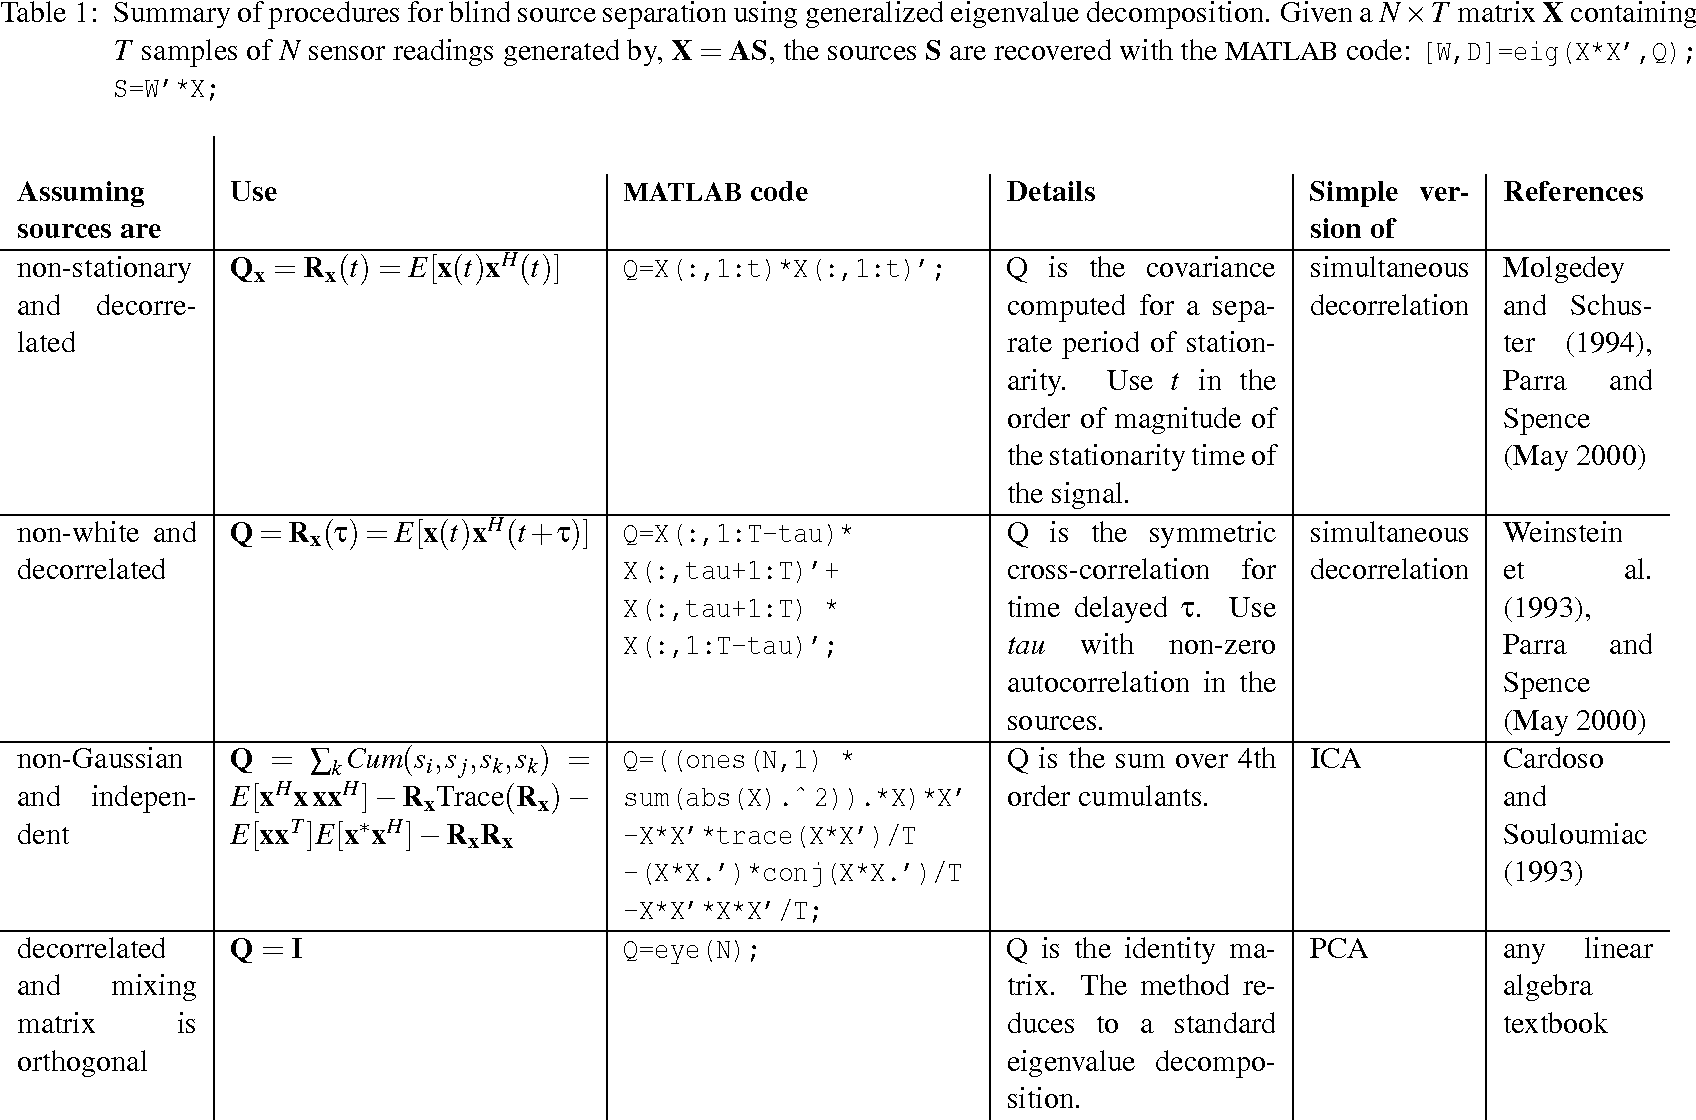 Table 1 from Blind Source Separation via Generalized